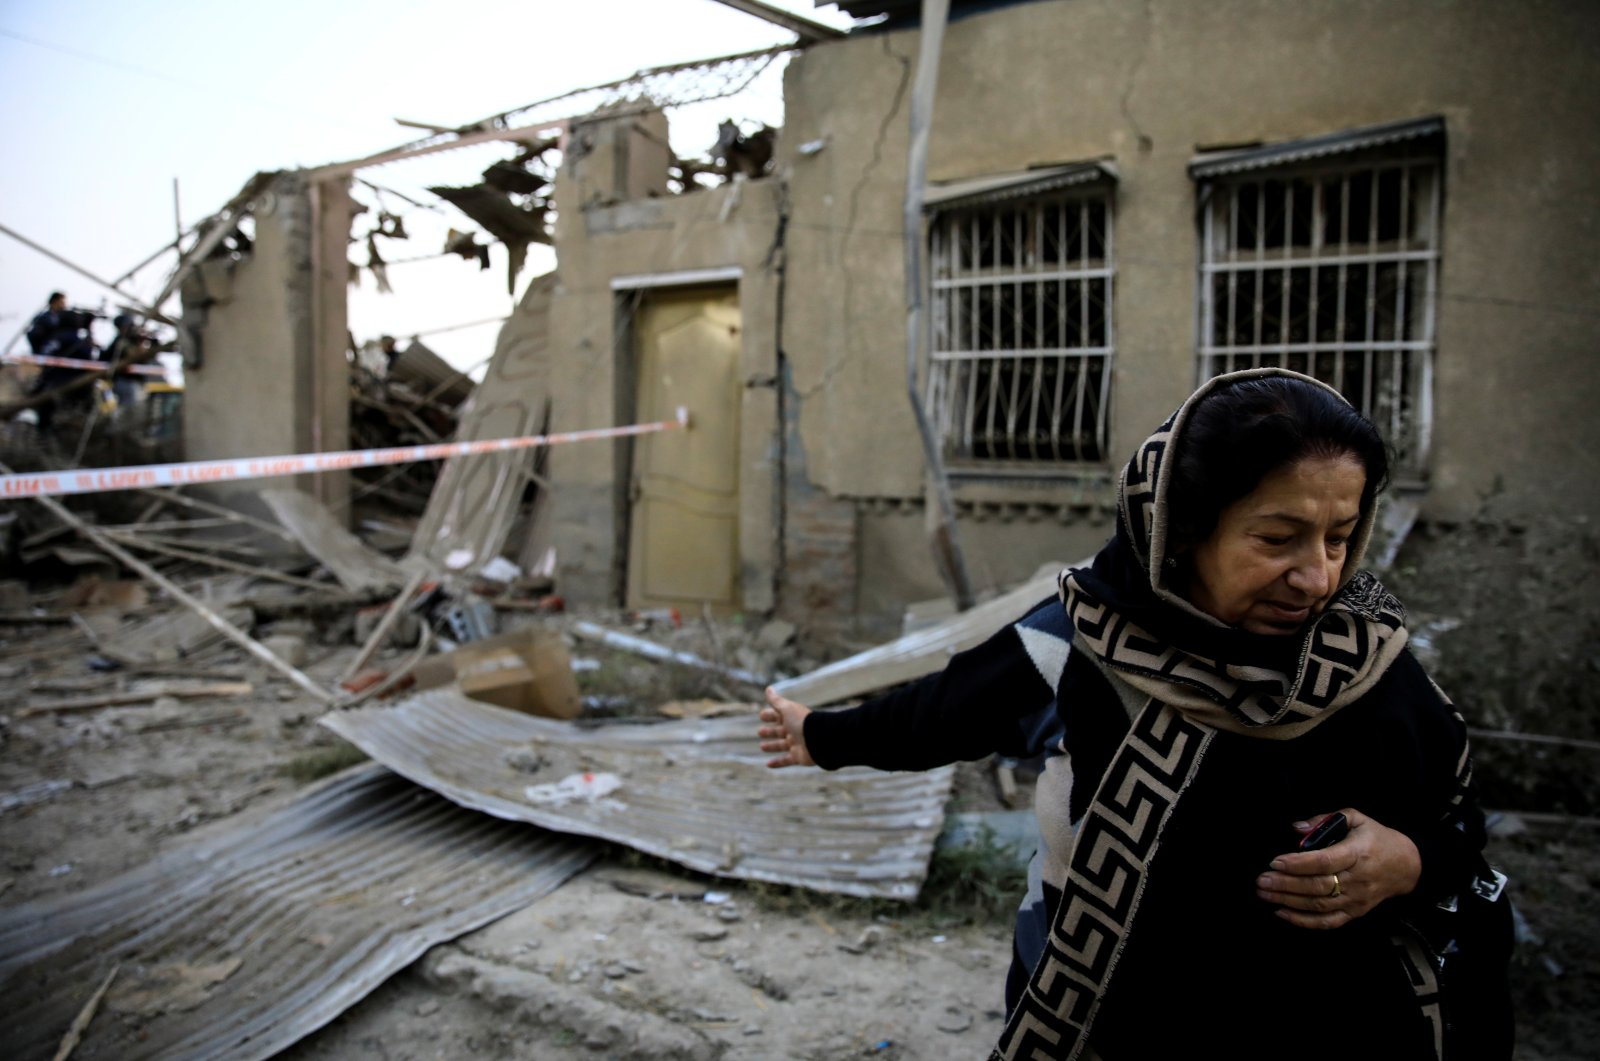 Hicran Quliyeva reacts as she stands in front of her house at a blast site hit by a rocket during the fighting over the illegally occupied region of Nagorno-Karabakh, in the city of Ganja, Azerbaijan, Oct. 17, 2020. (Reuters Photo)